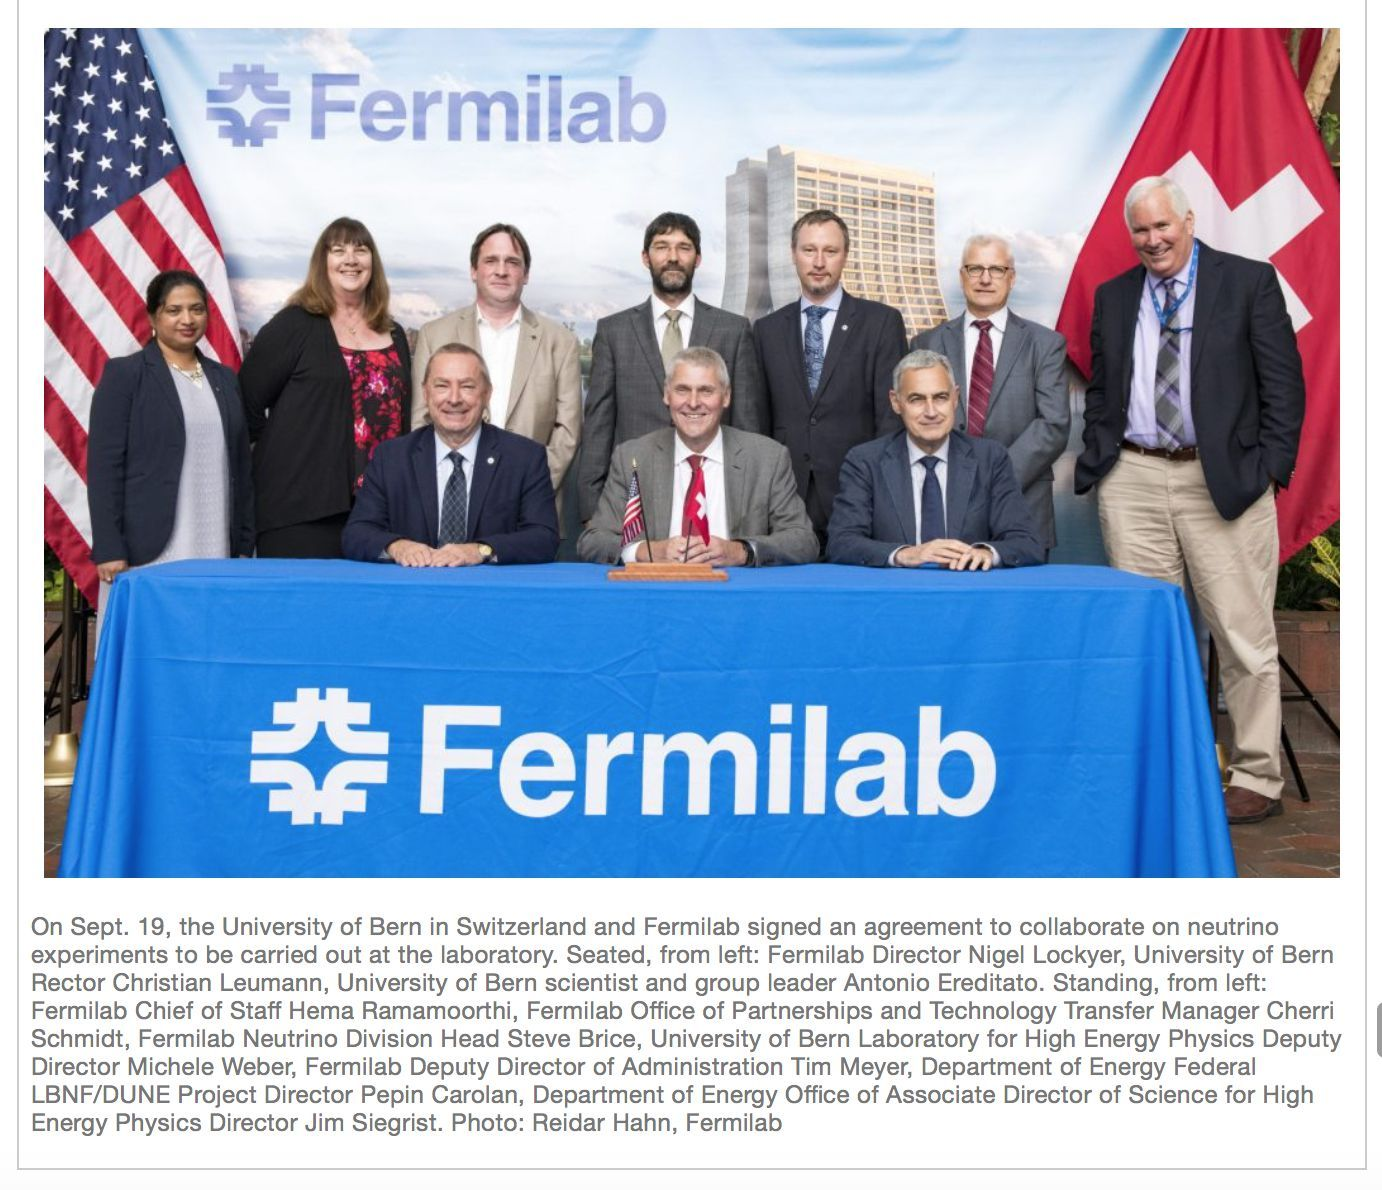 Fermilab and University of Bern join forces for neutrino physics